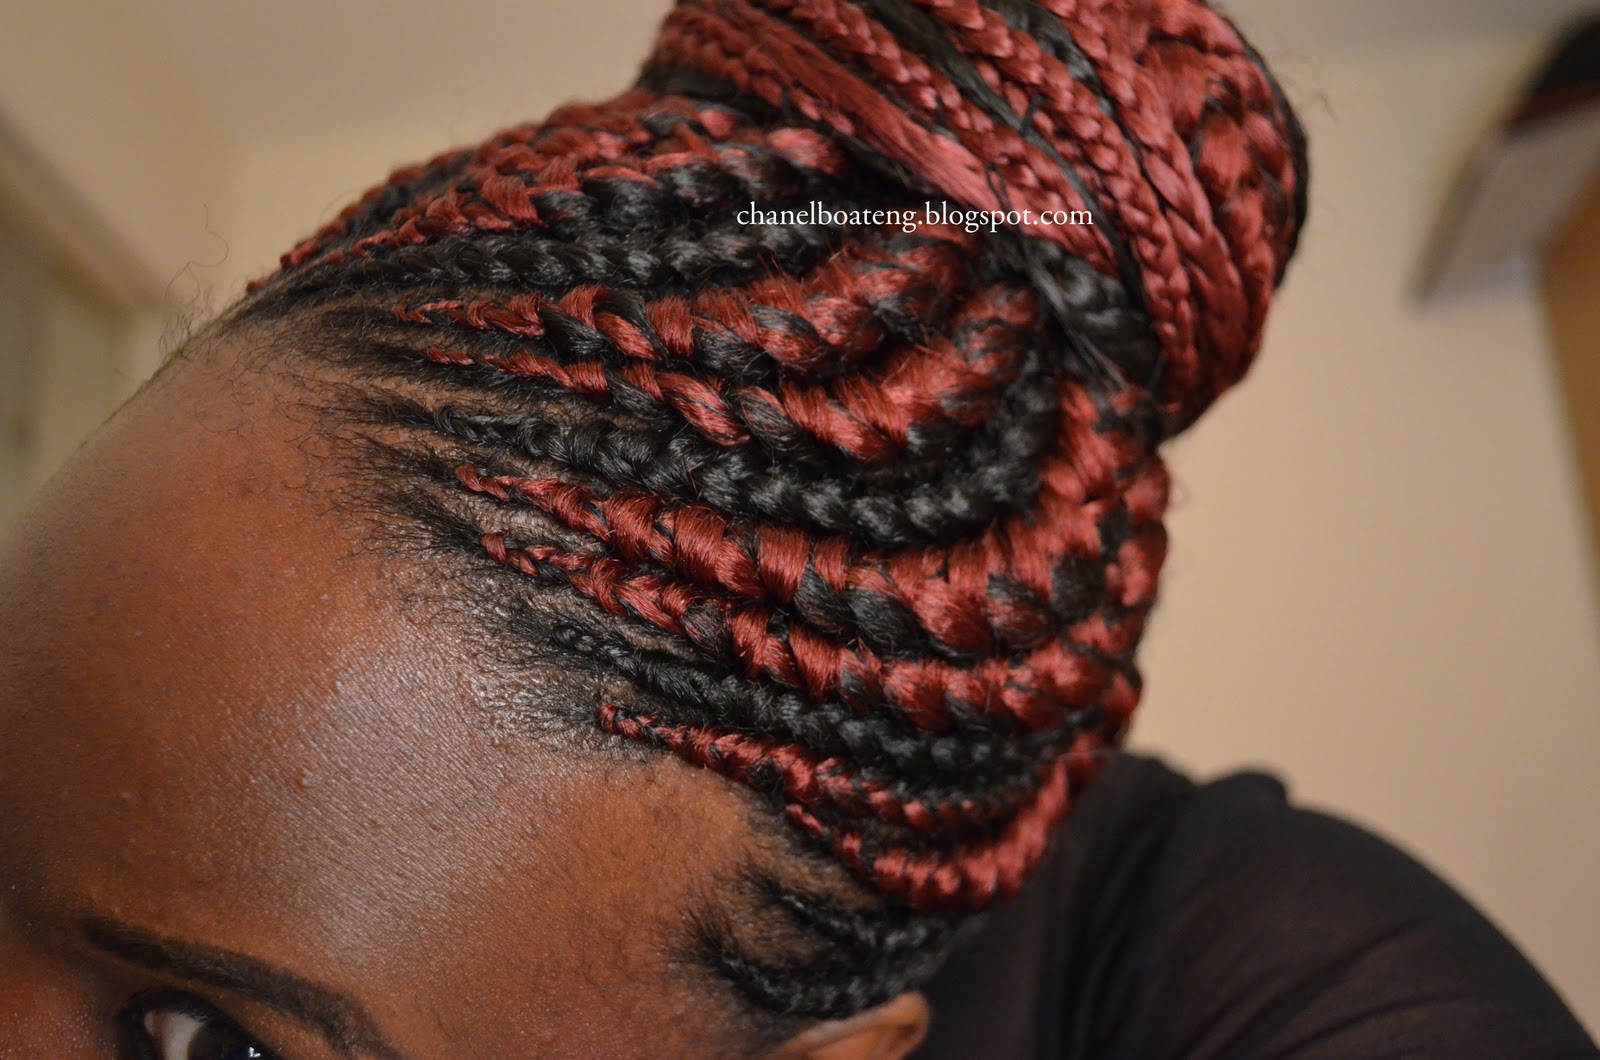 Here are the pics of my new birthday hair, hope it can inspire someone ...